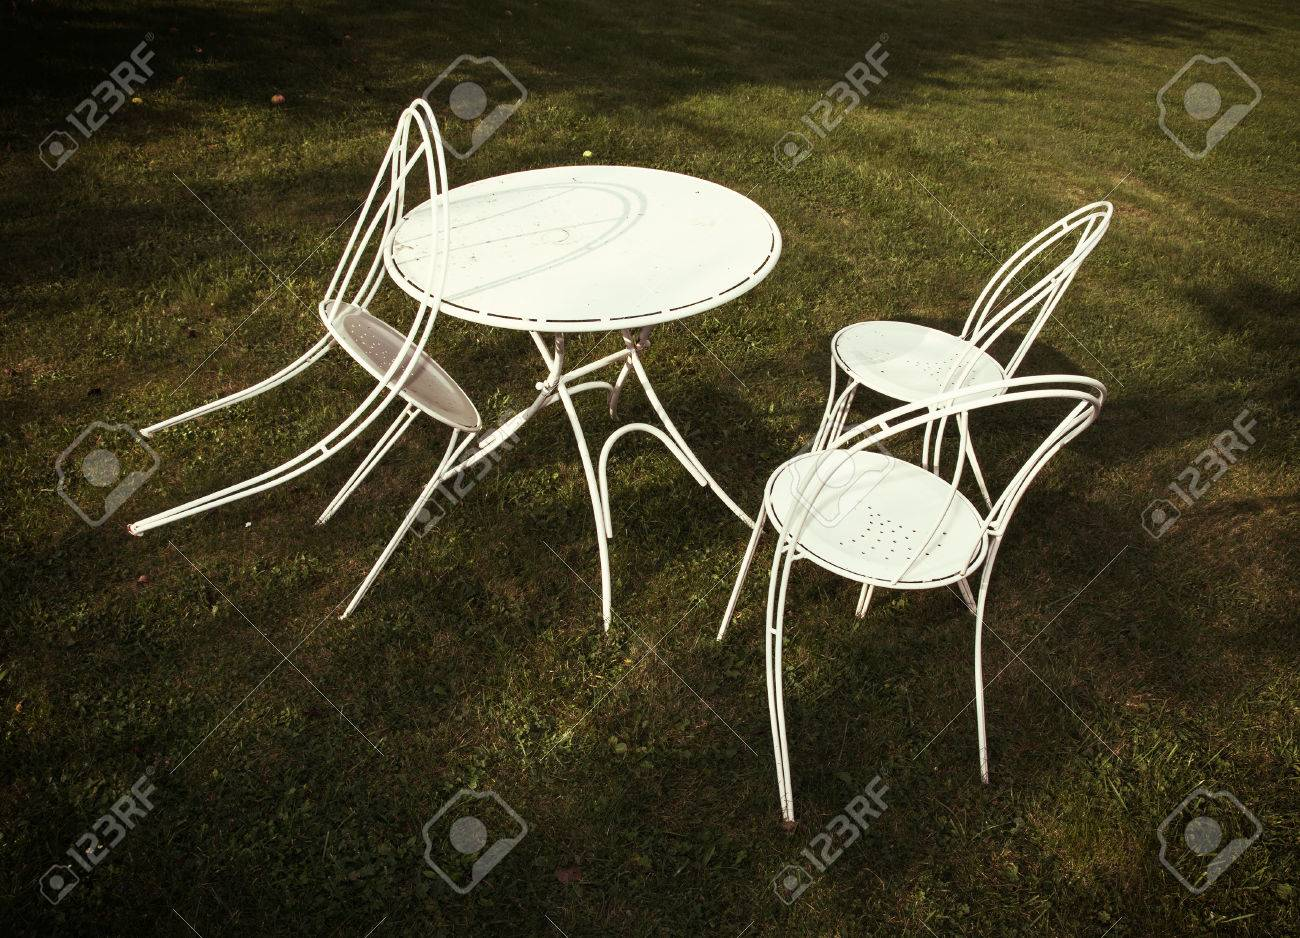 Swell White Metal Table And Chairs On The Lawn Garden Party Interior Design Ideas Pimpapslepicentreinfo